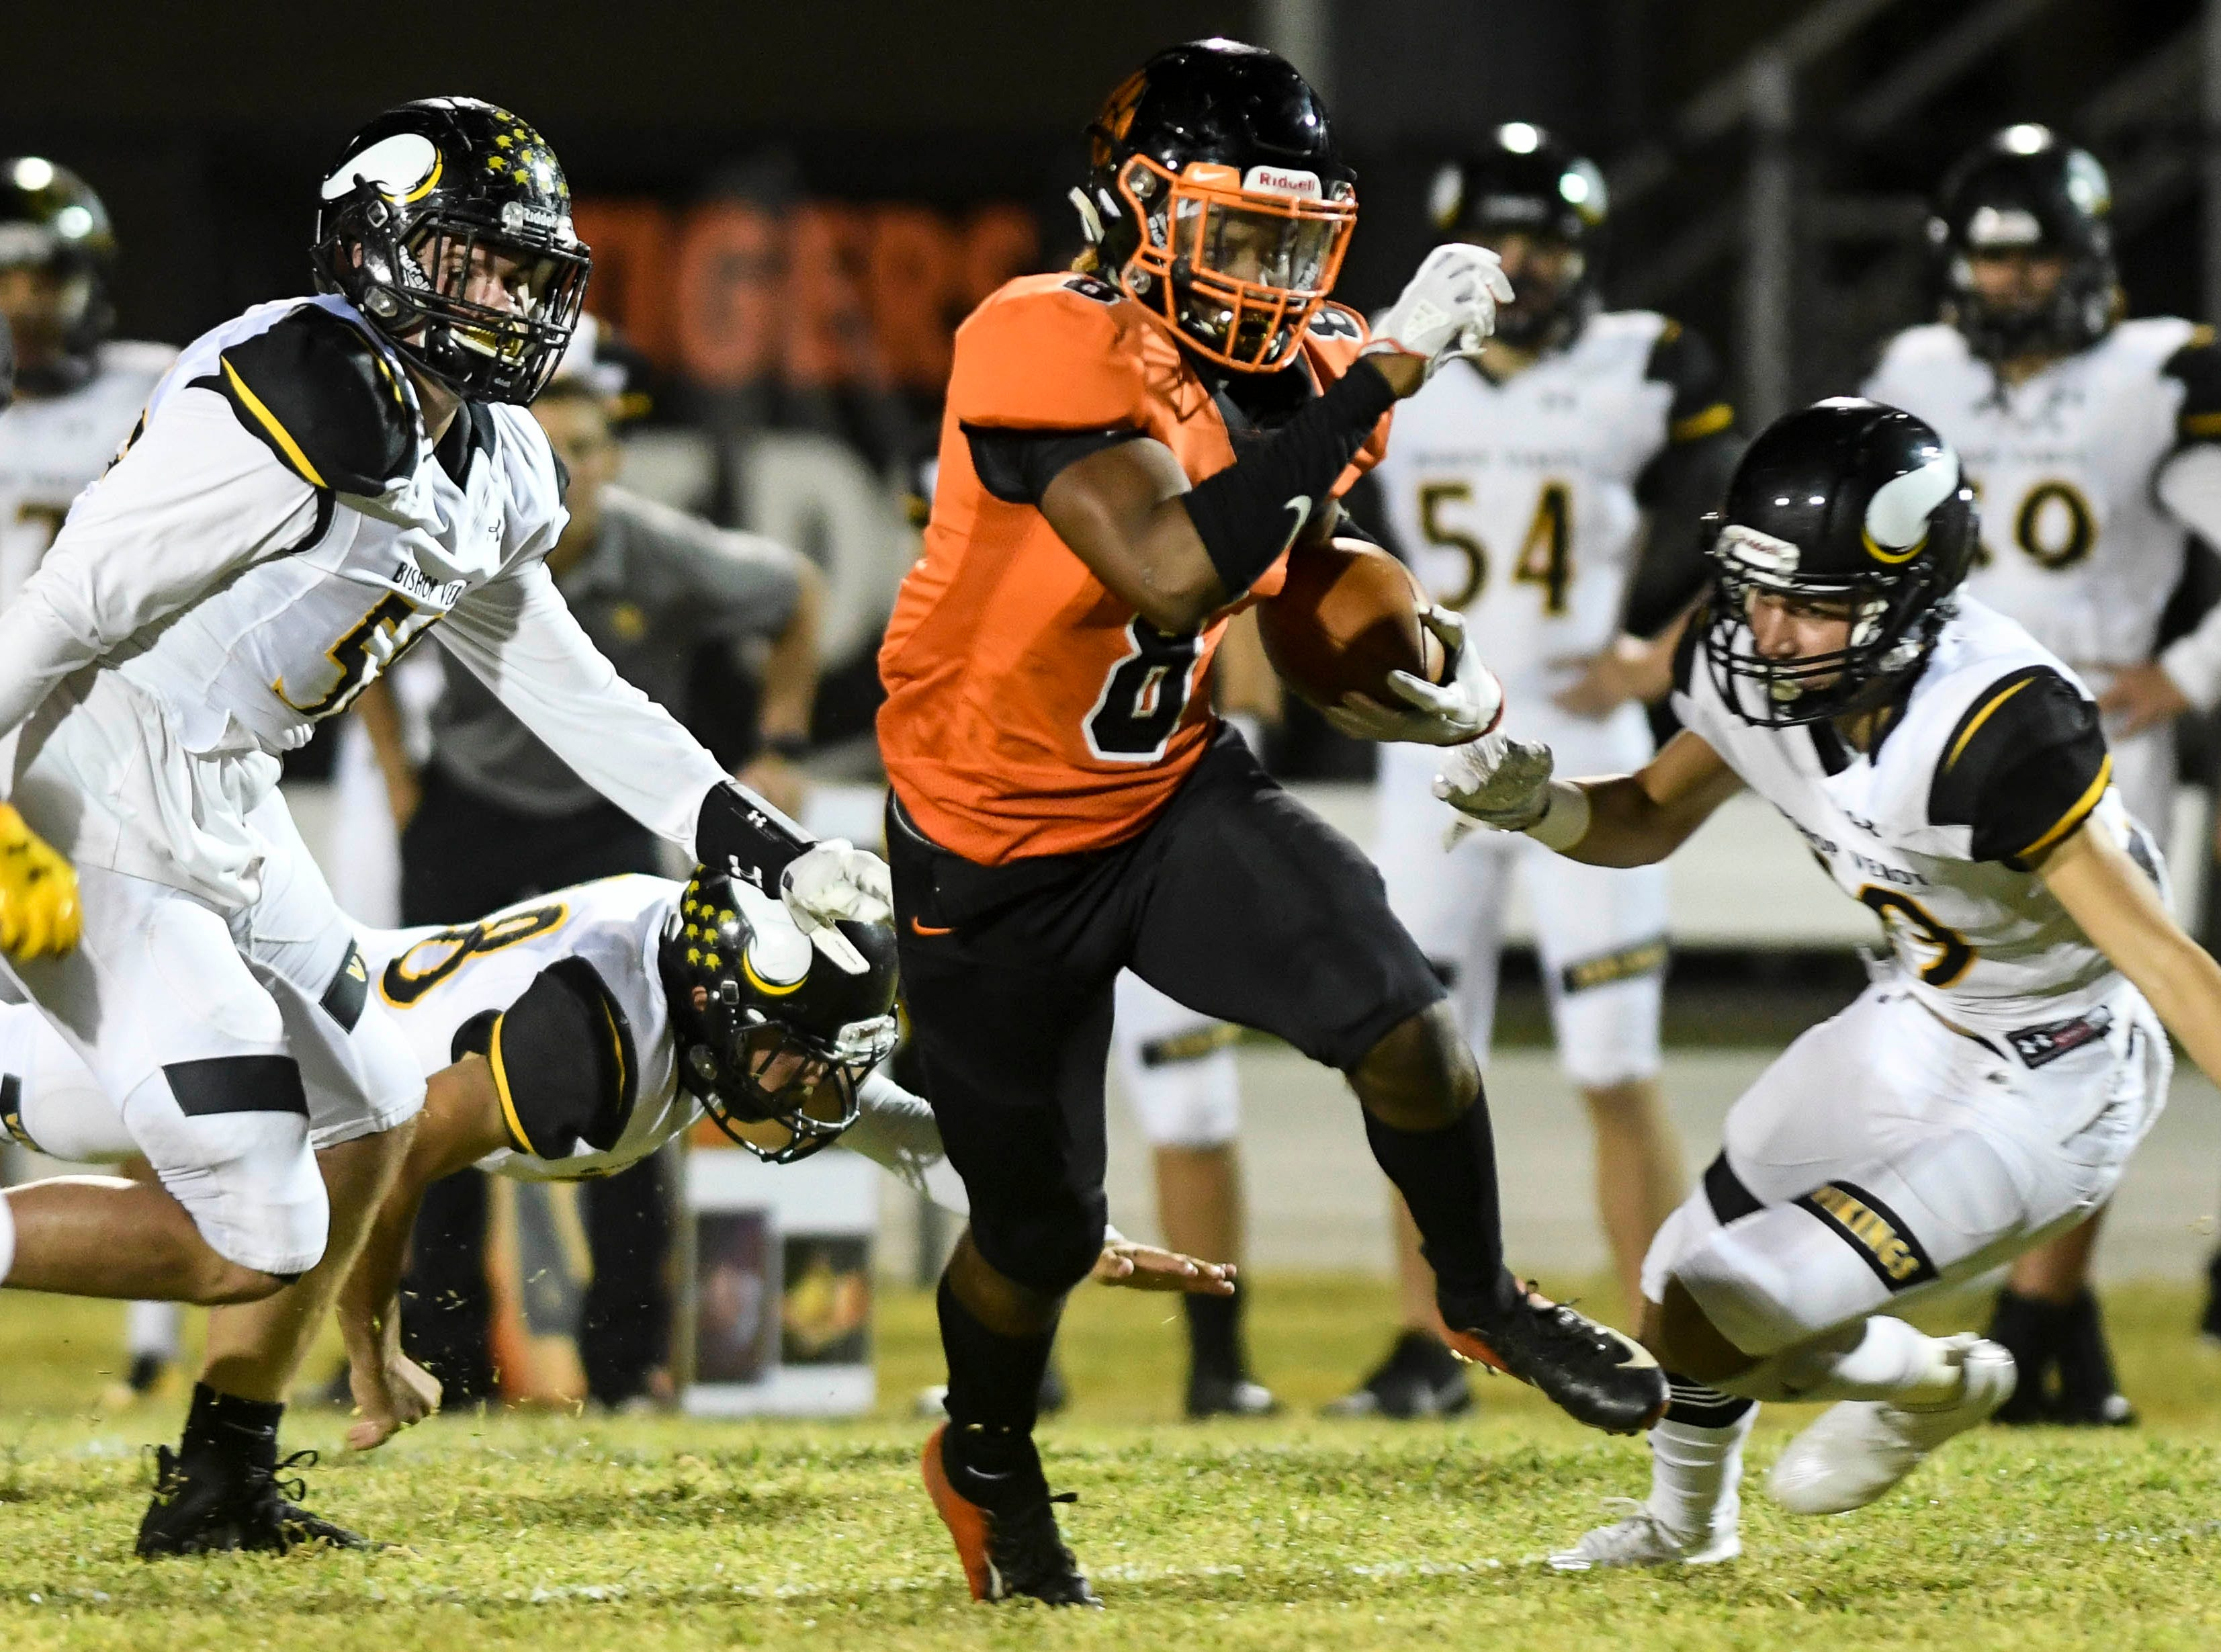 Caziah Holmes of Cocoa runs the ball during Friday's game against Cocoa.